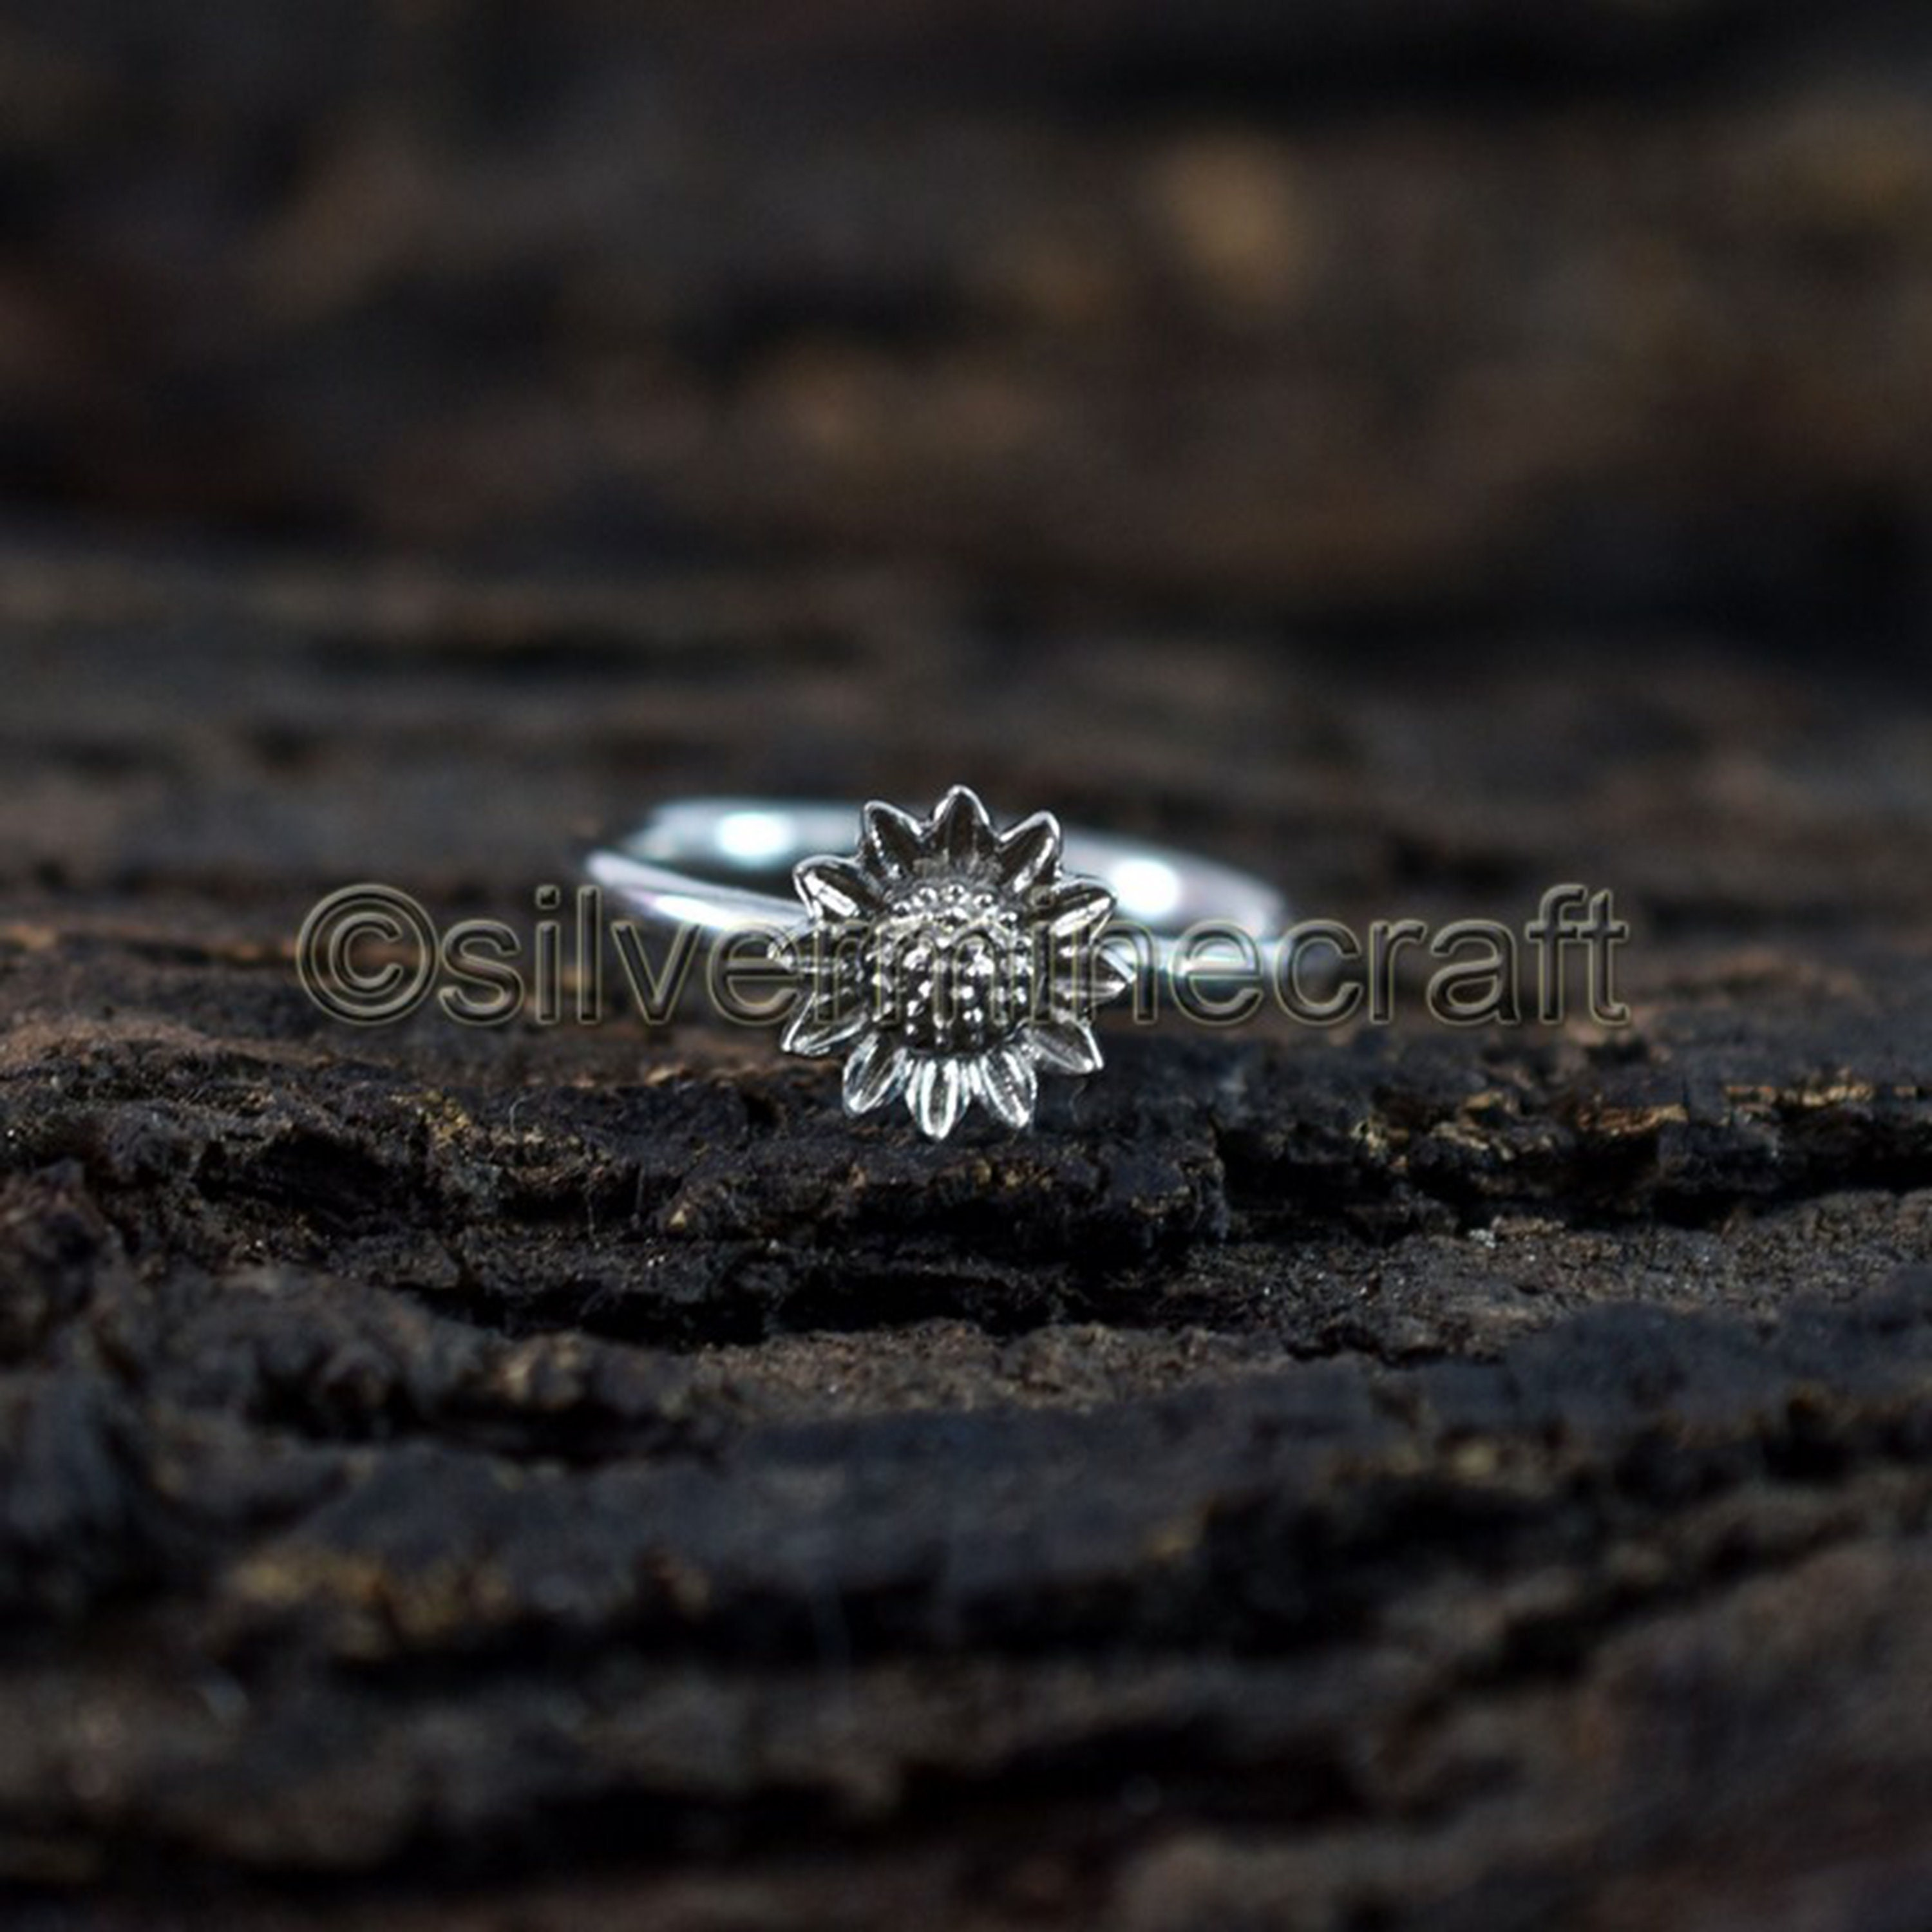 PRETTY SUNFLOWER BAND Ring All Genuine Sterling Silver.925 Stamped Size 5